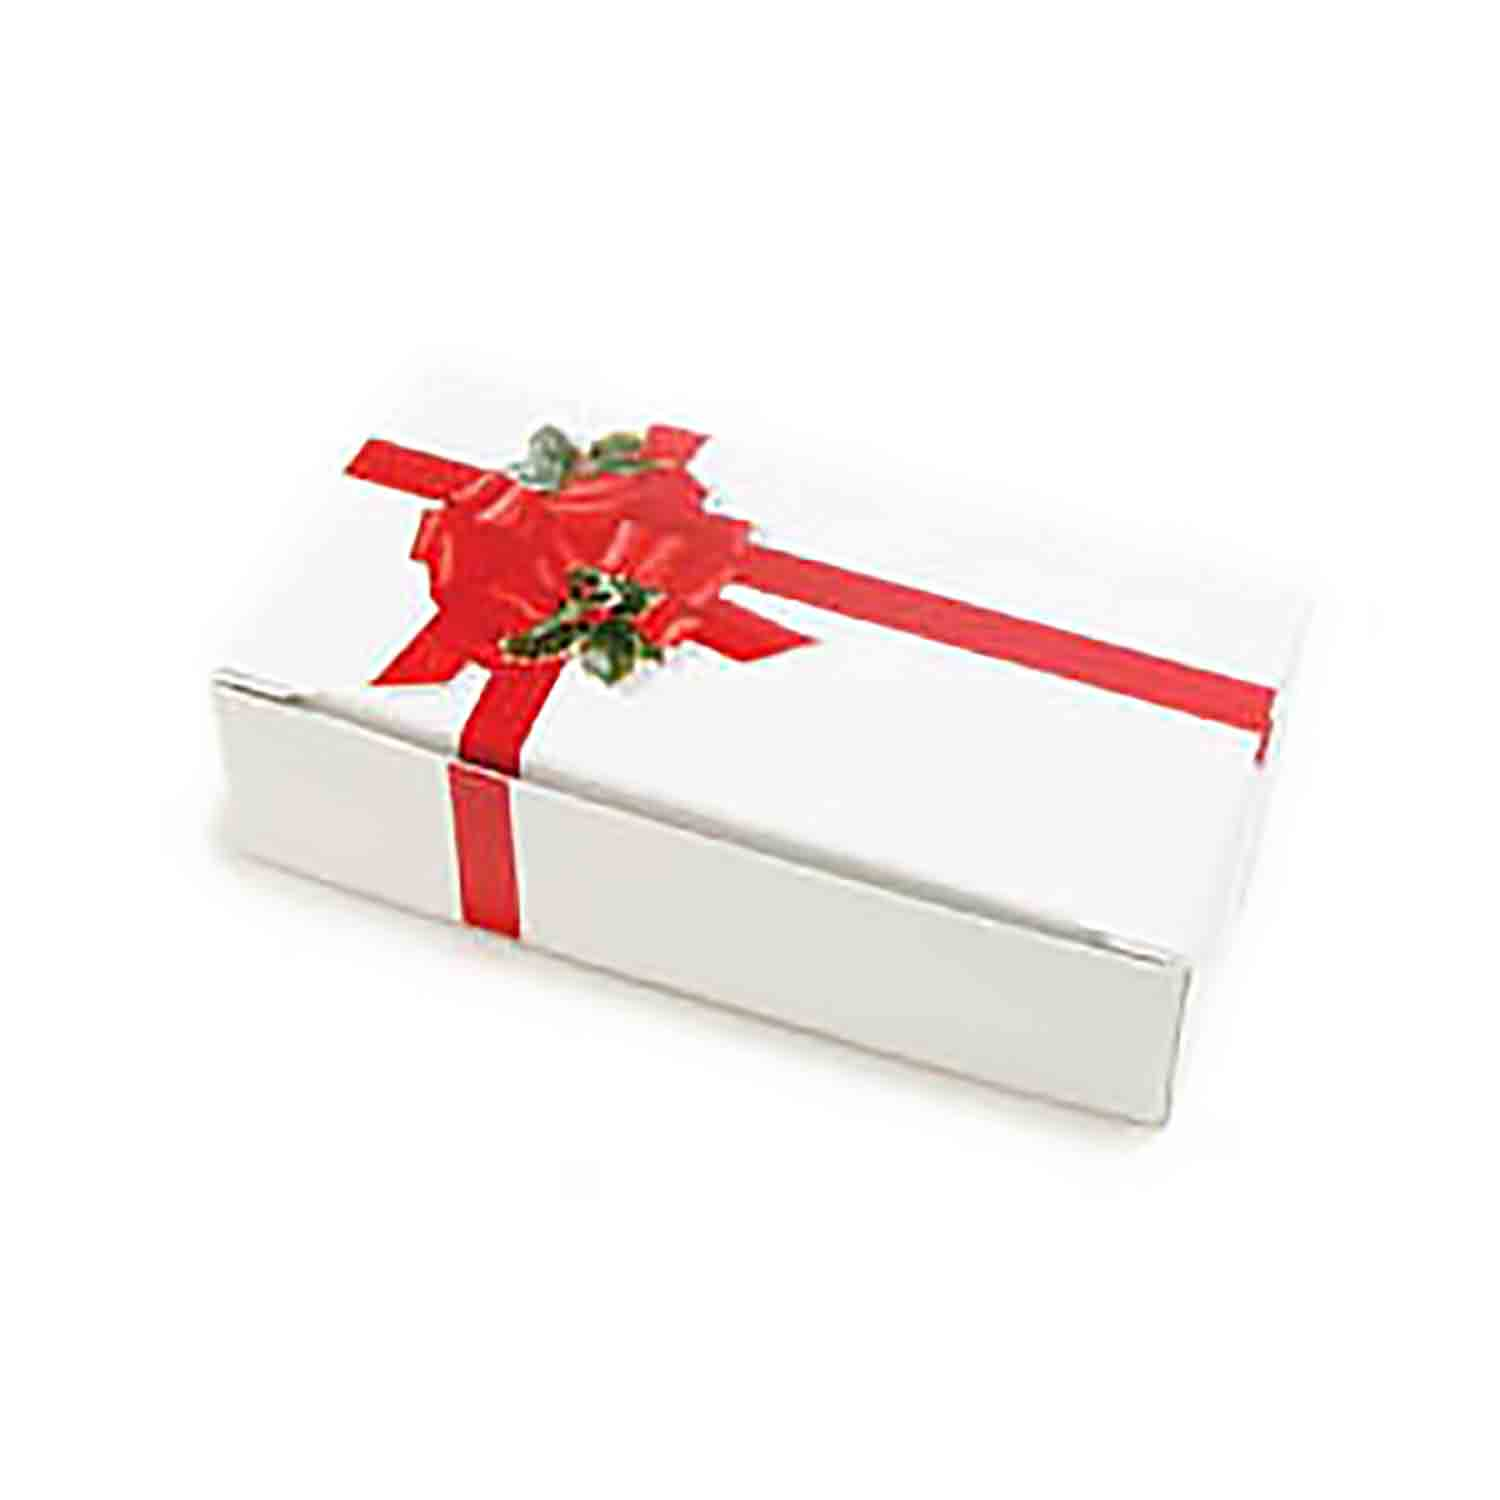 1/2 lb. Ribbon & Holly Candy Box